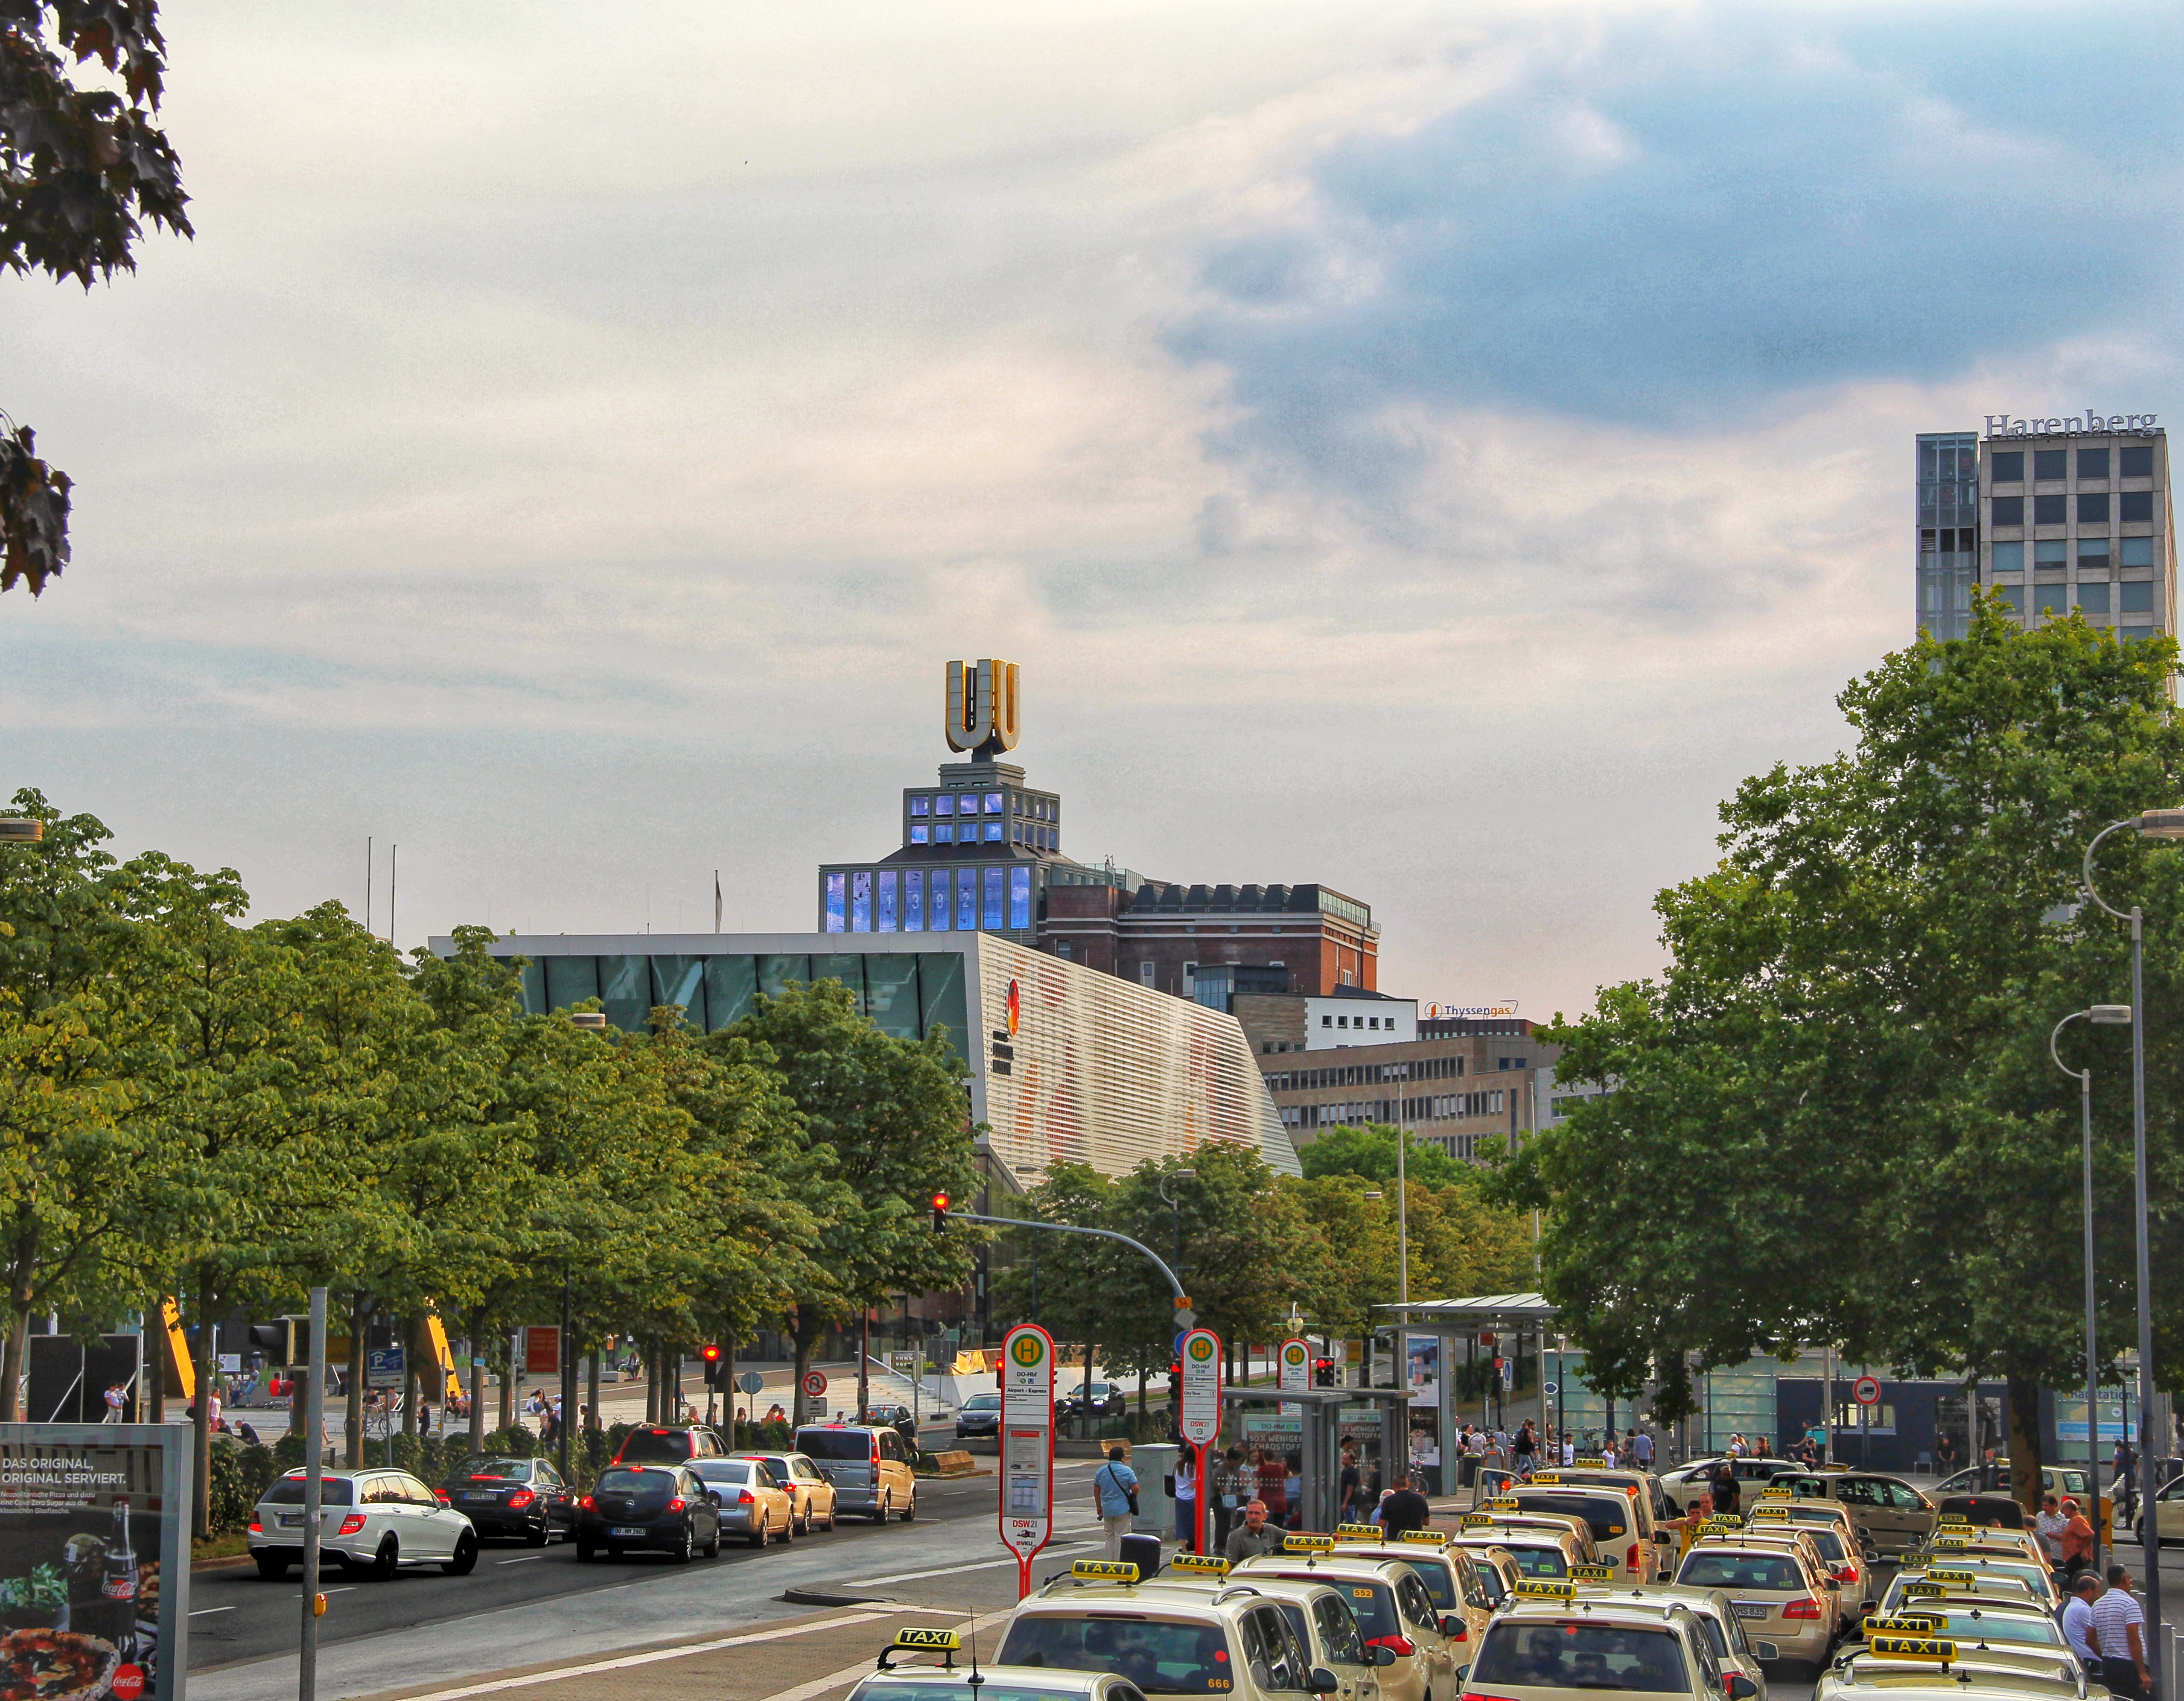 Panorama showing the German Football Museum and the U-tower in the background.